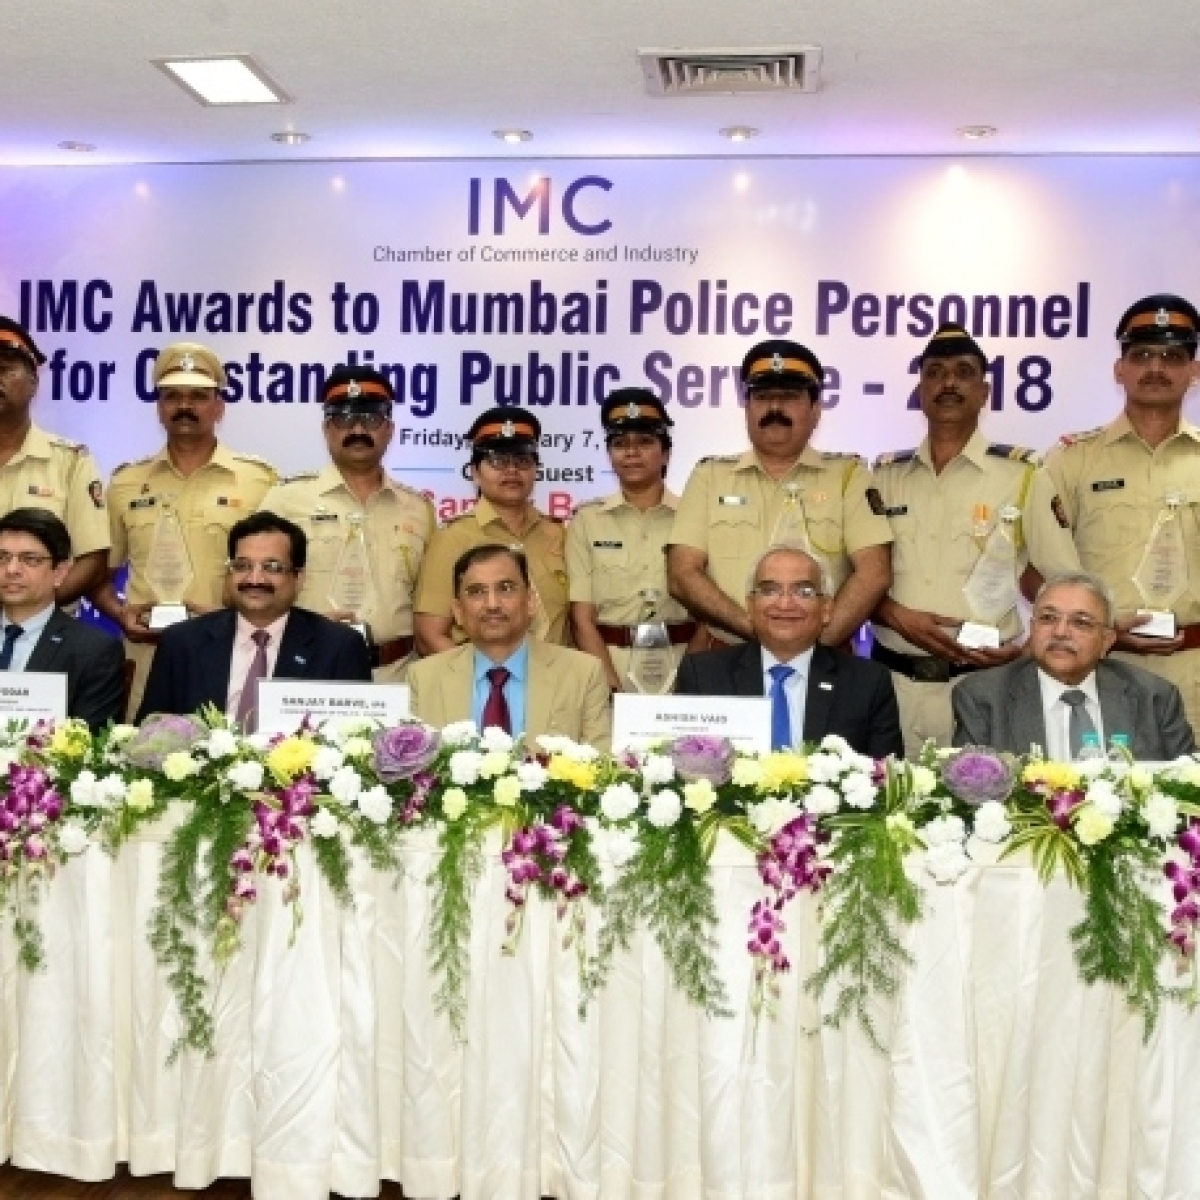 IMC Police Awards is a recognition of the good work done by Mumbai Police: Sanjay Barve